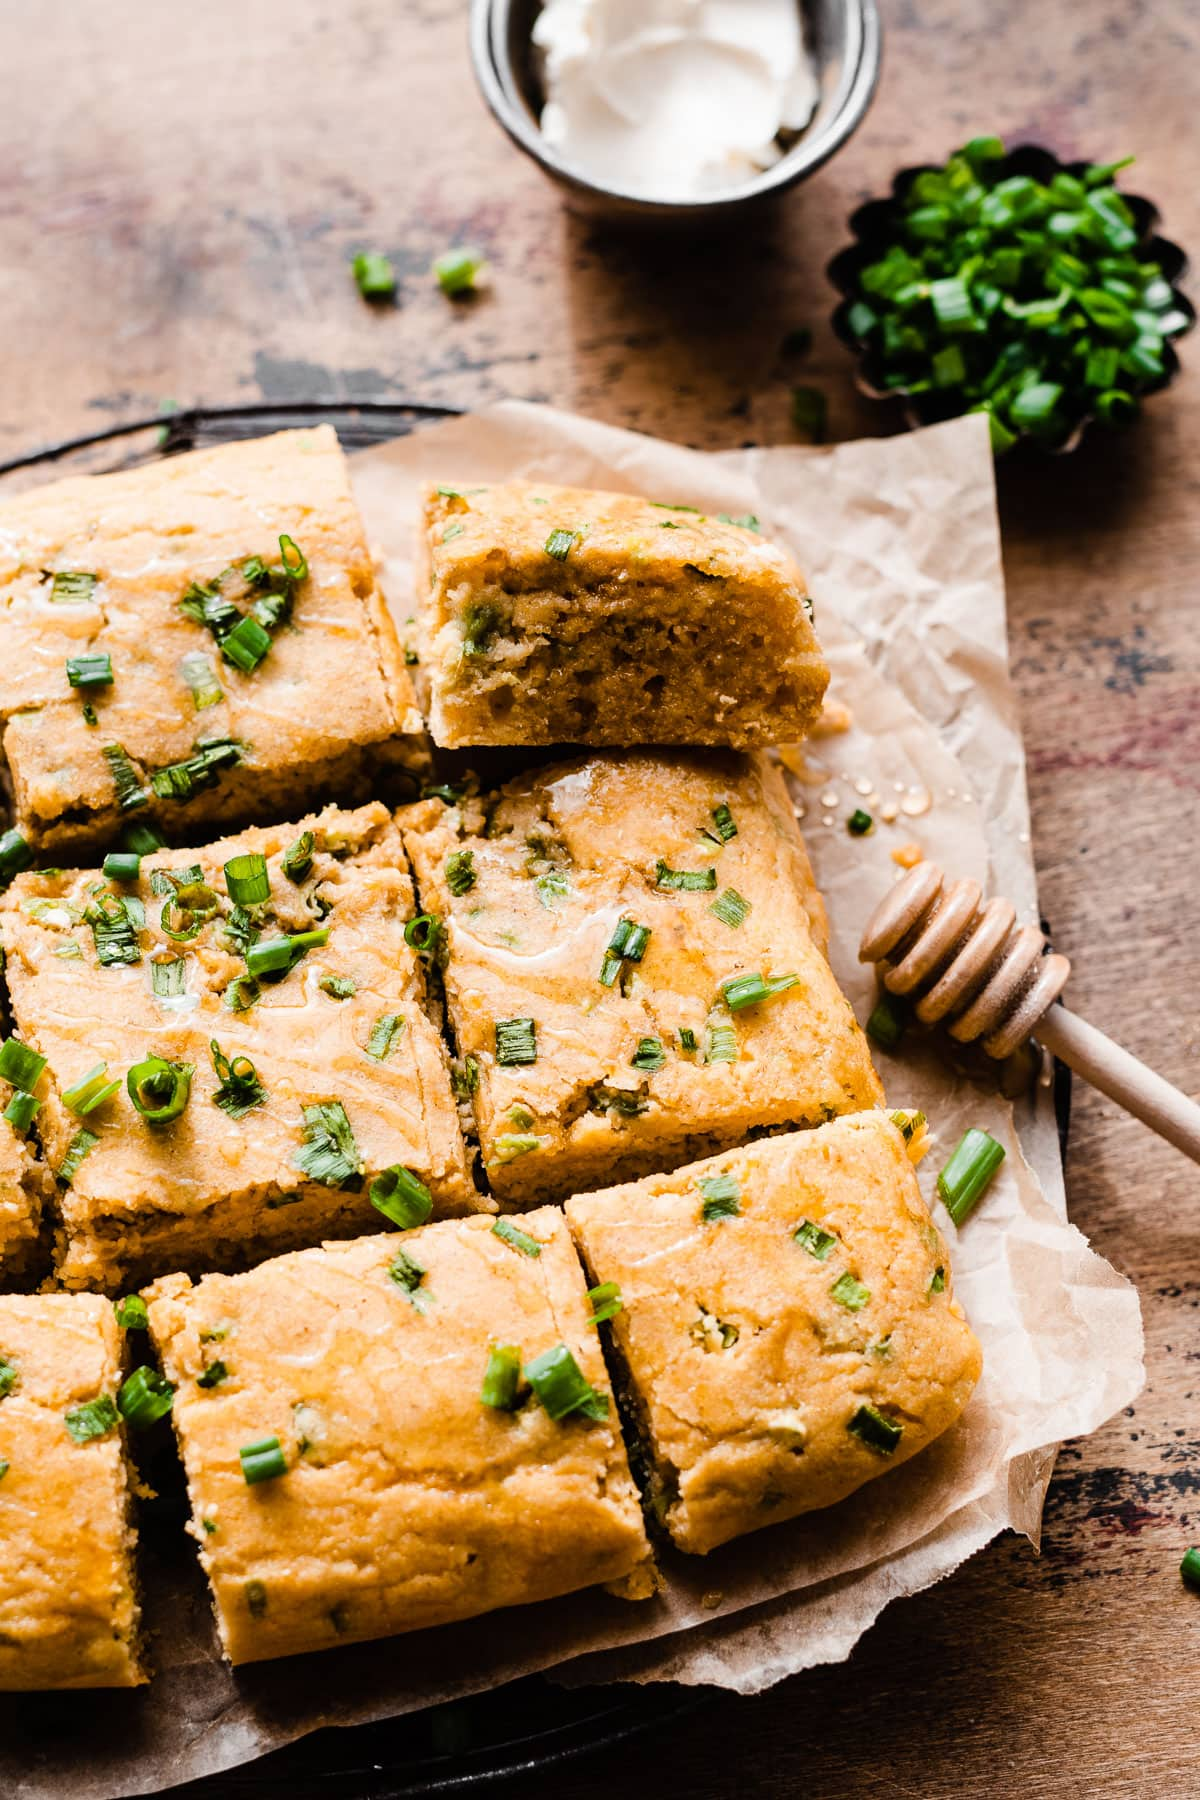 Cheesy Jalapeno Cornbread. Moist, tender and loaded with cheese. Made with unsweetened apple sauce, this healthy cornbread will be your go-to recipe!